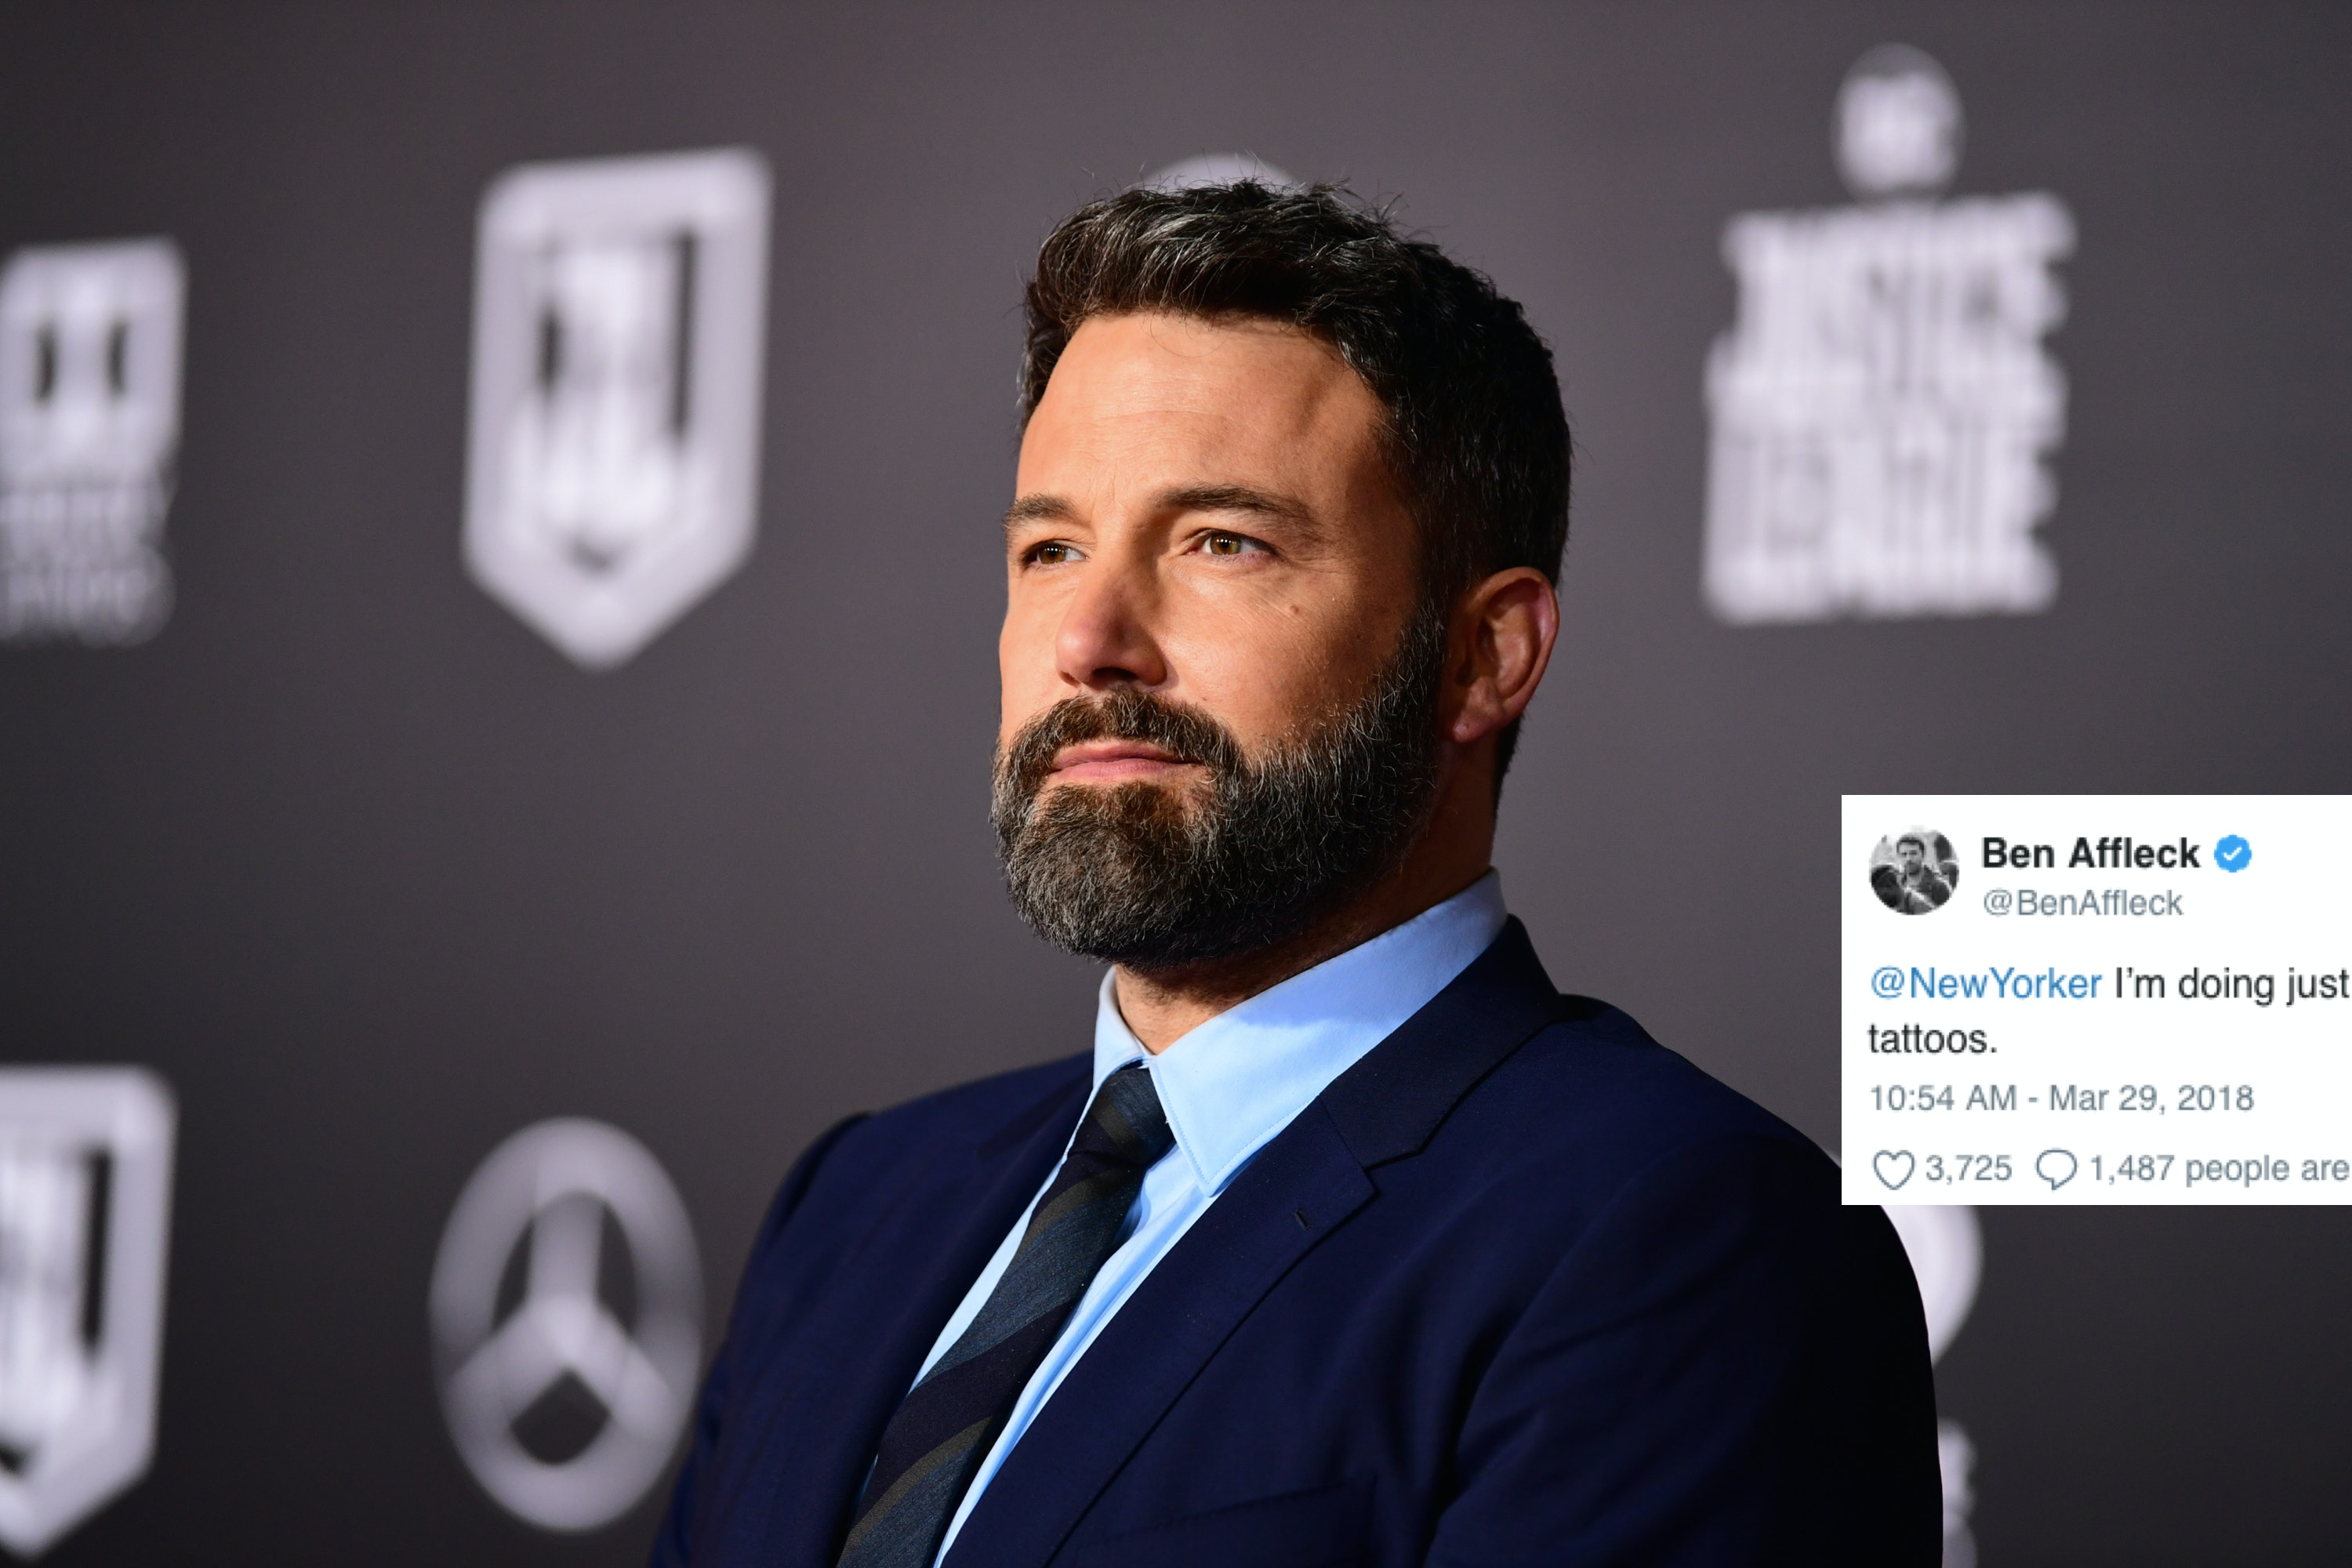 Watch Ben Affleck hits back at The New Yorker article about his tattoo video